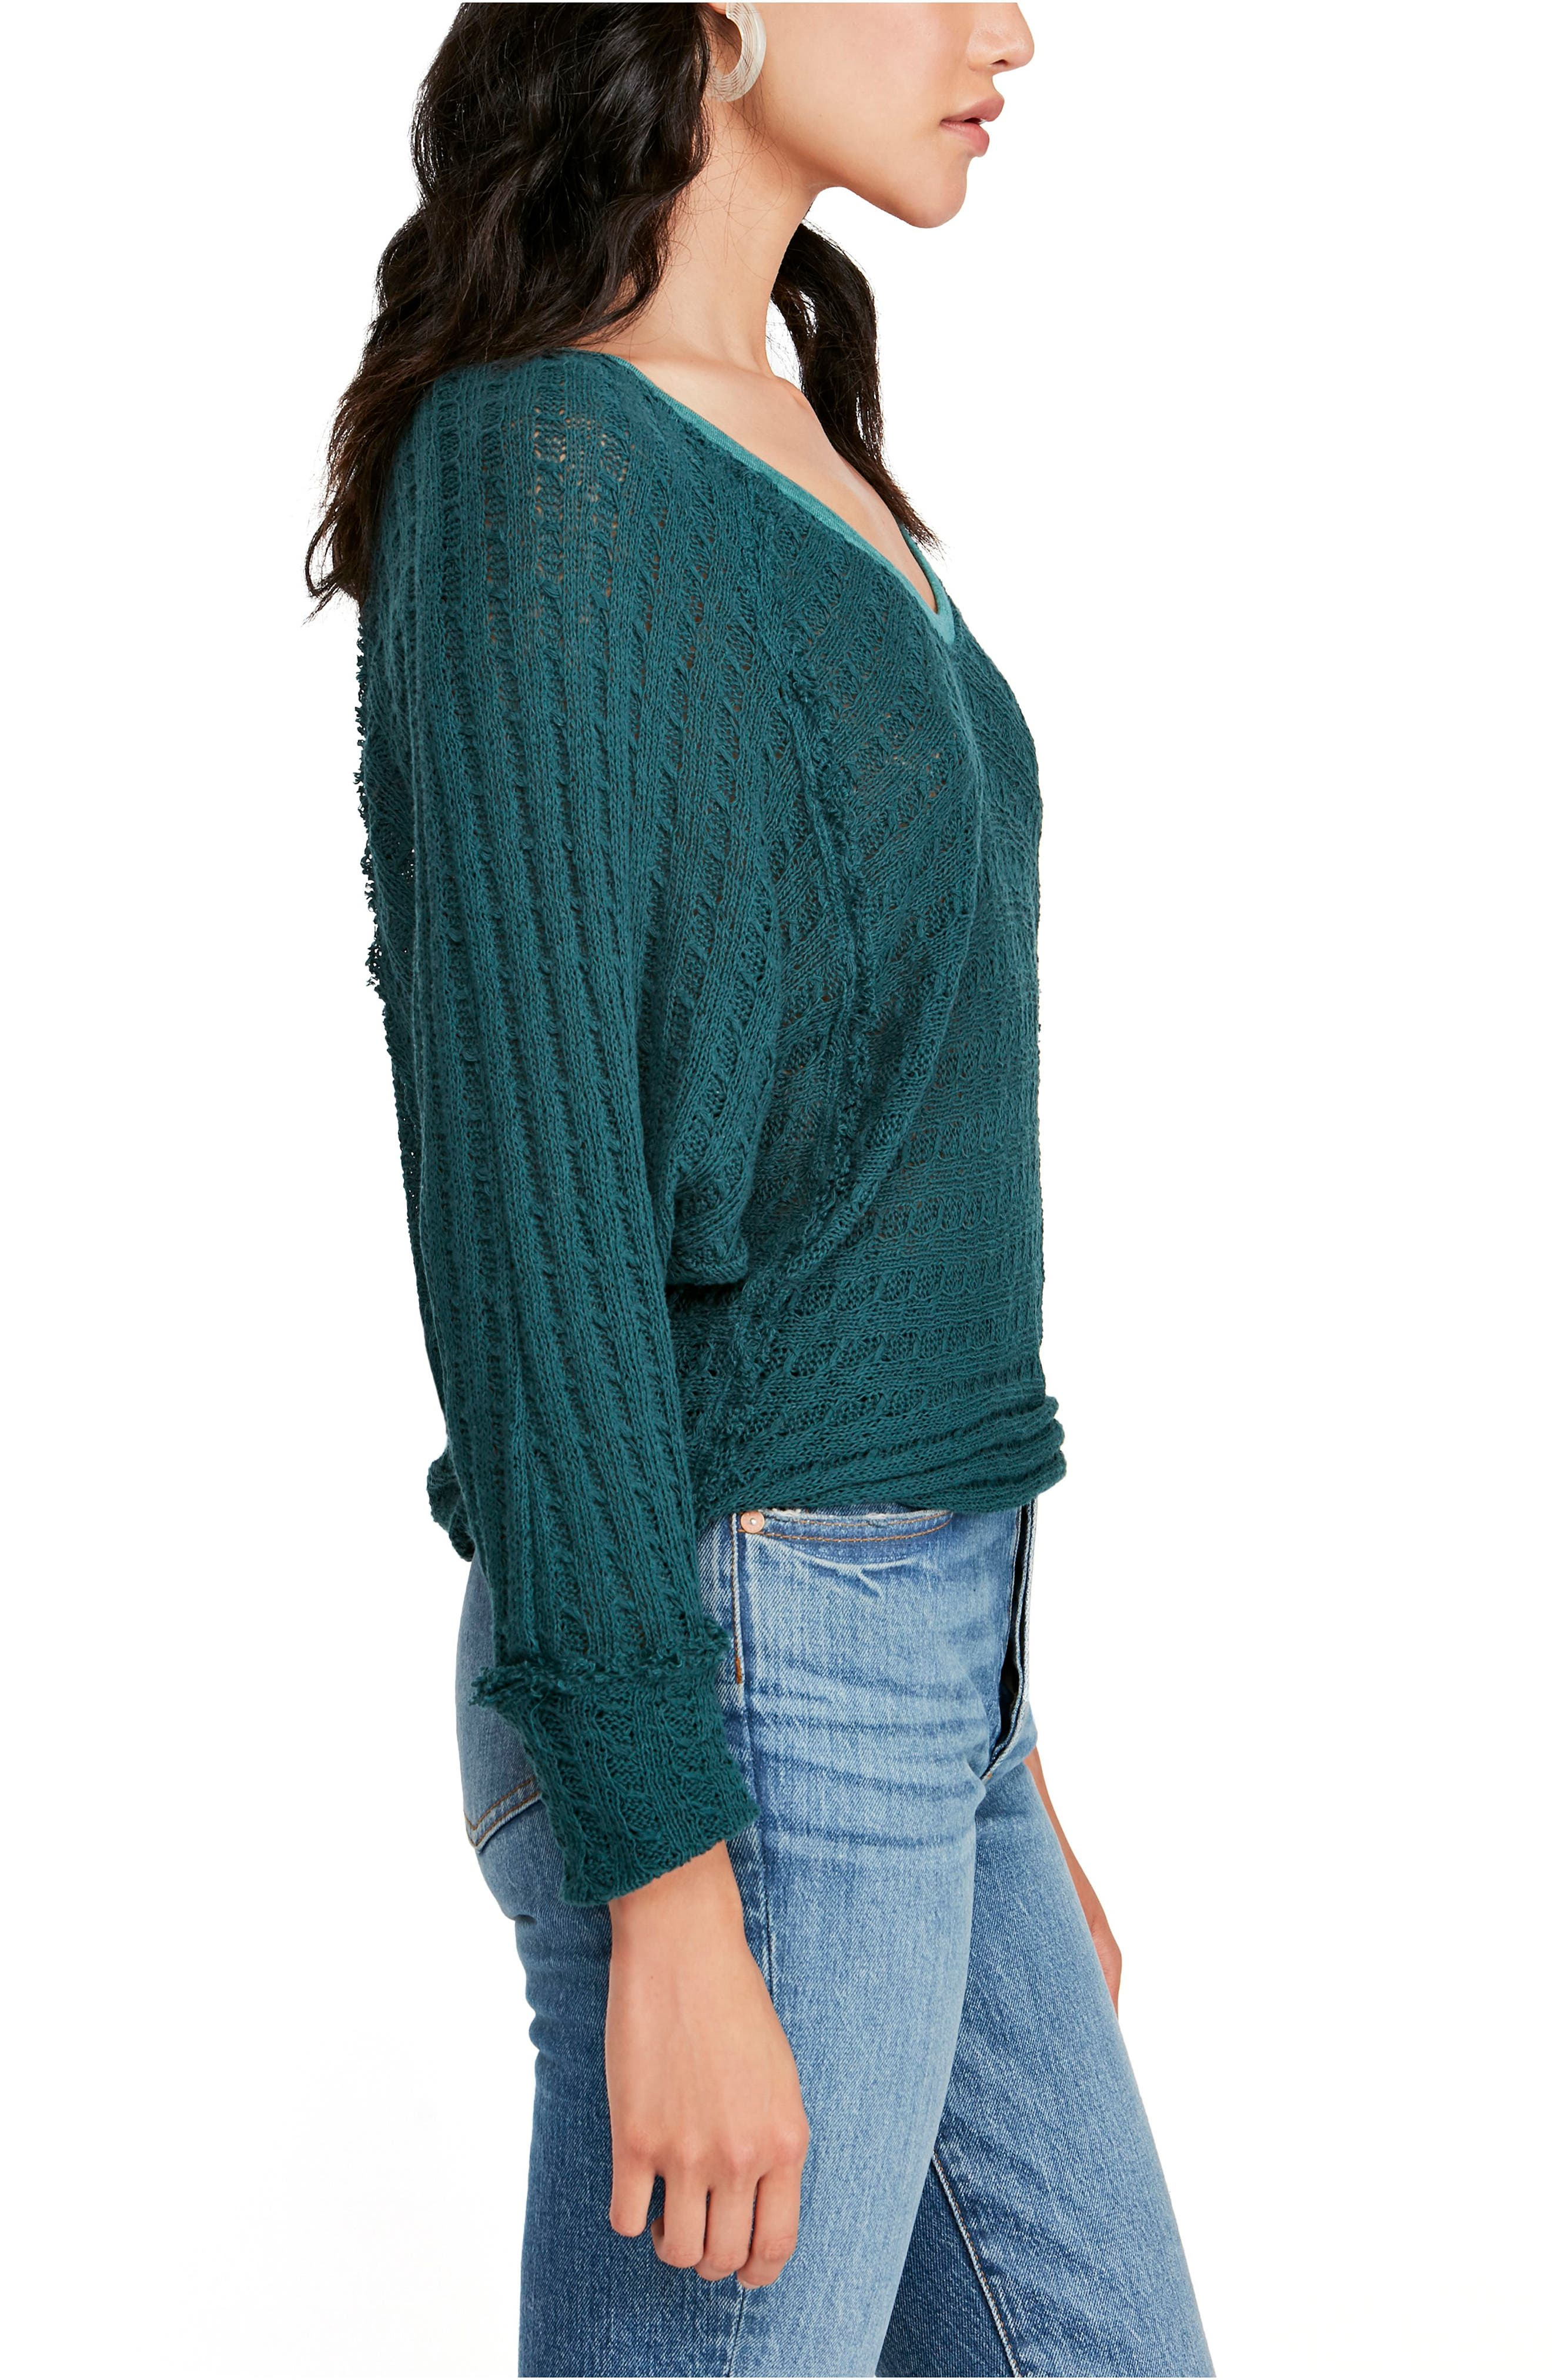 FREE PEOPLE, Thien's Hacci Top, Alternate thumbnail 3, color, TURQUOISE